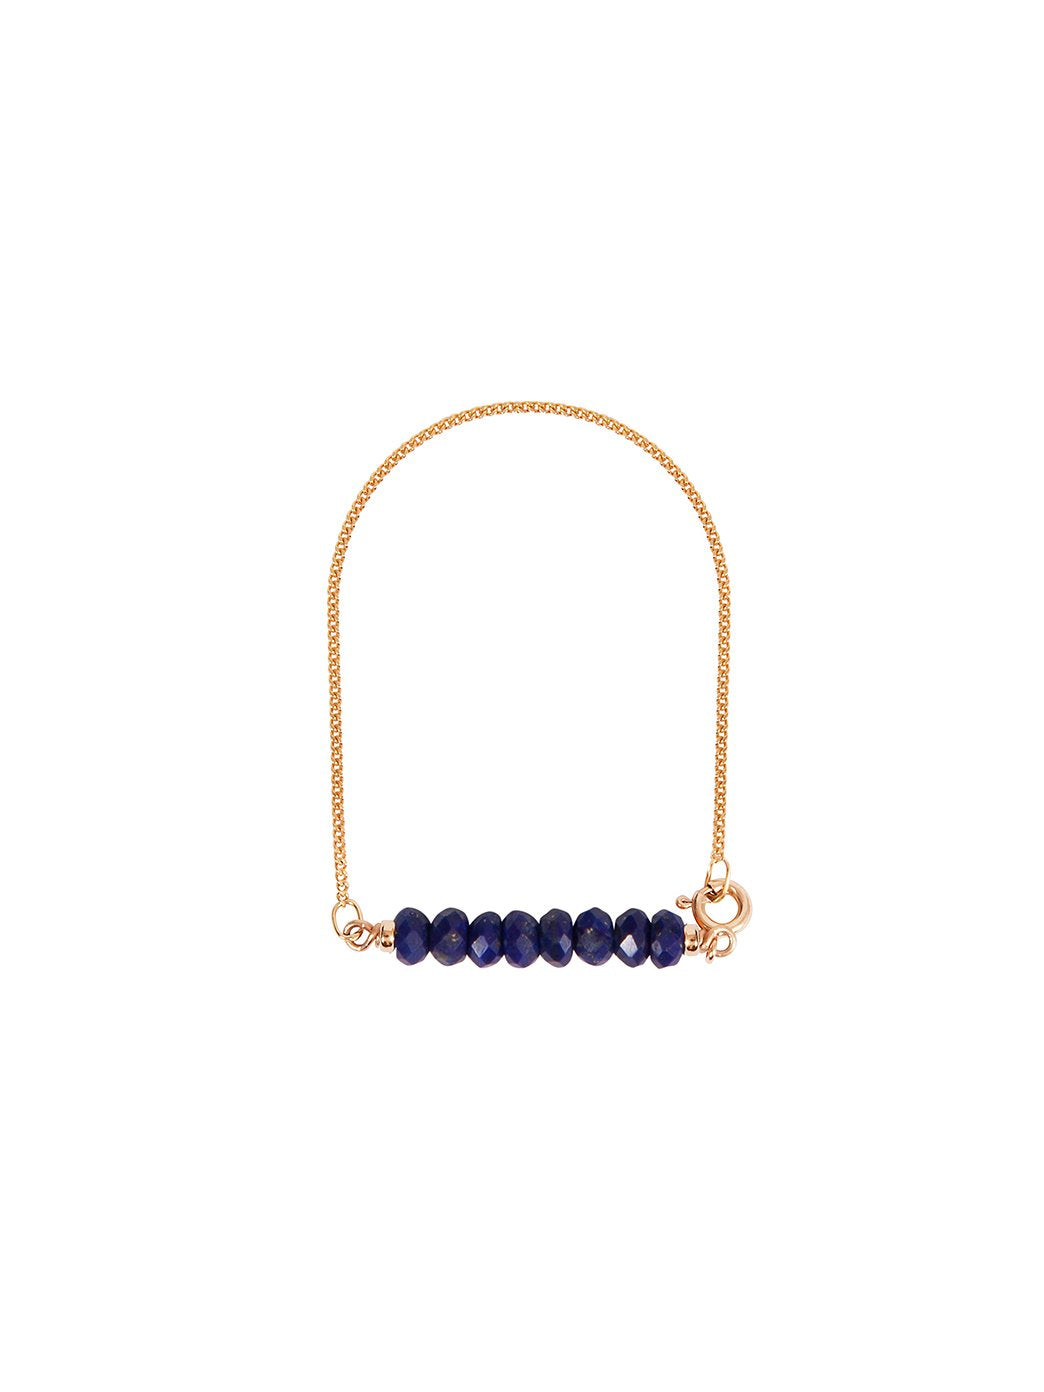 Fiorina Jewellery Gold Friendship Bracelet Lapis